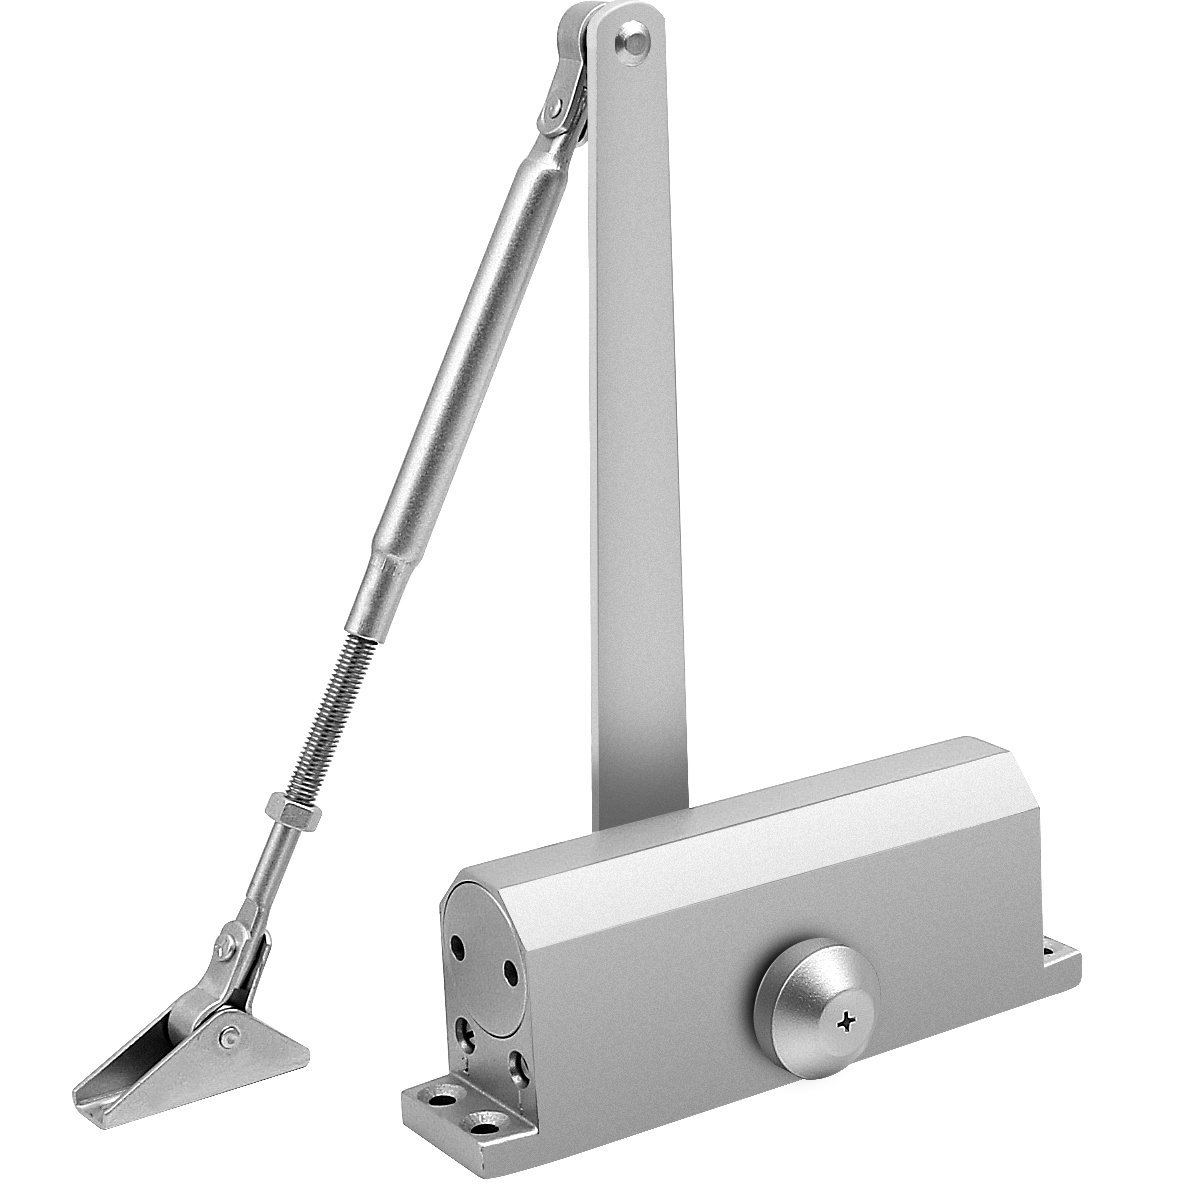 Onarway Adjustable Automatic Size 3 Spring Hydraulic Door Closer for Residential and Light Commercial Use with Fitting Template for Middle-Weight Door(Aluminum Alloy)